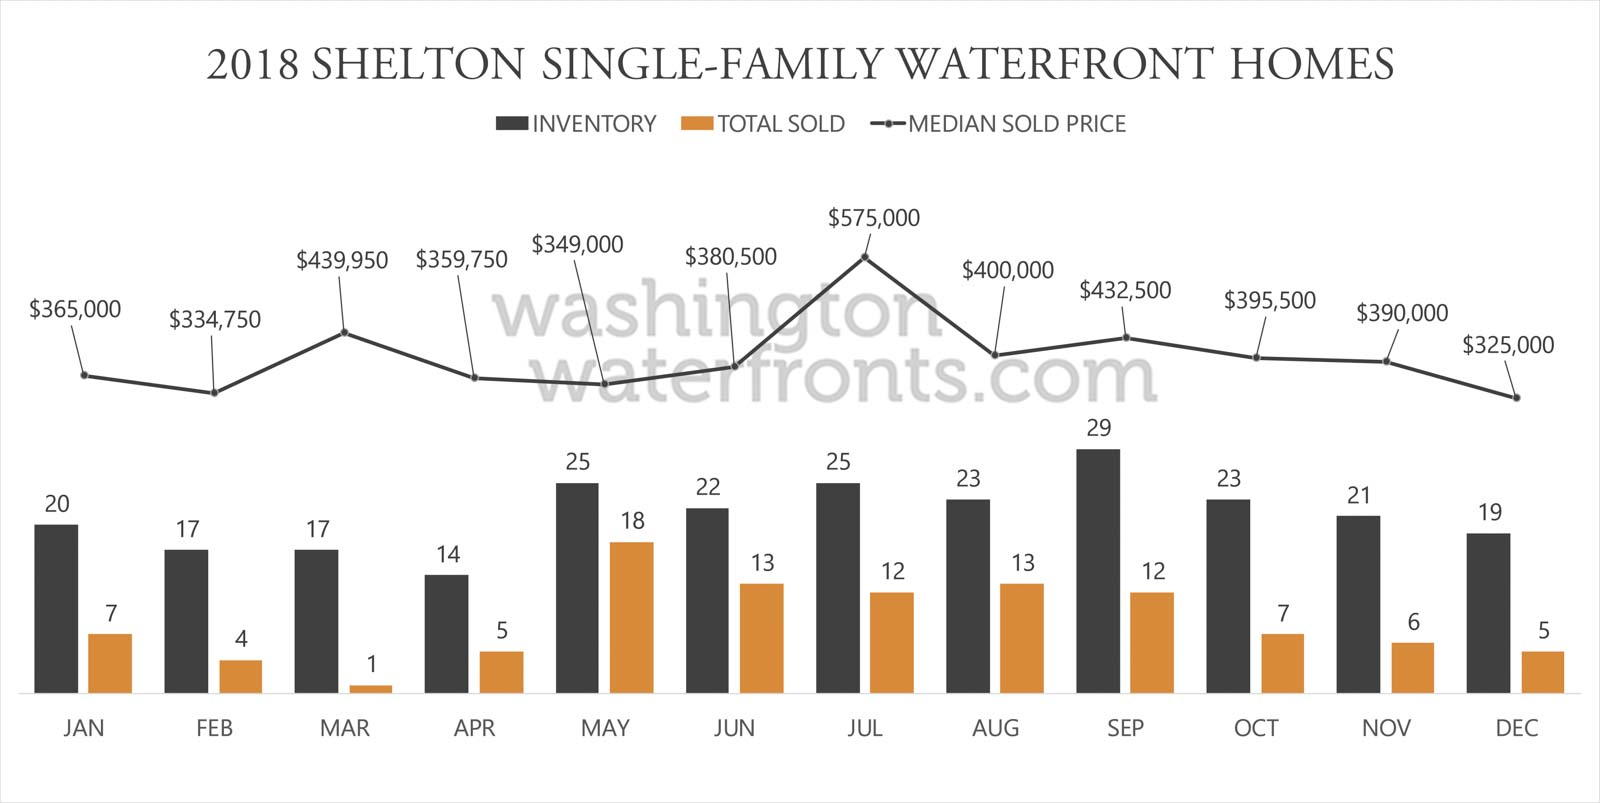 Shelton Waterfront Inventory